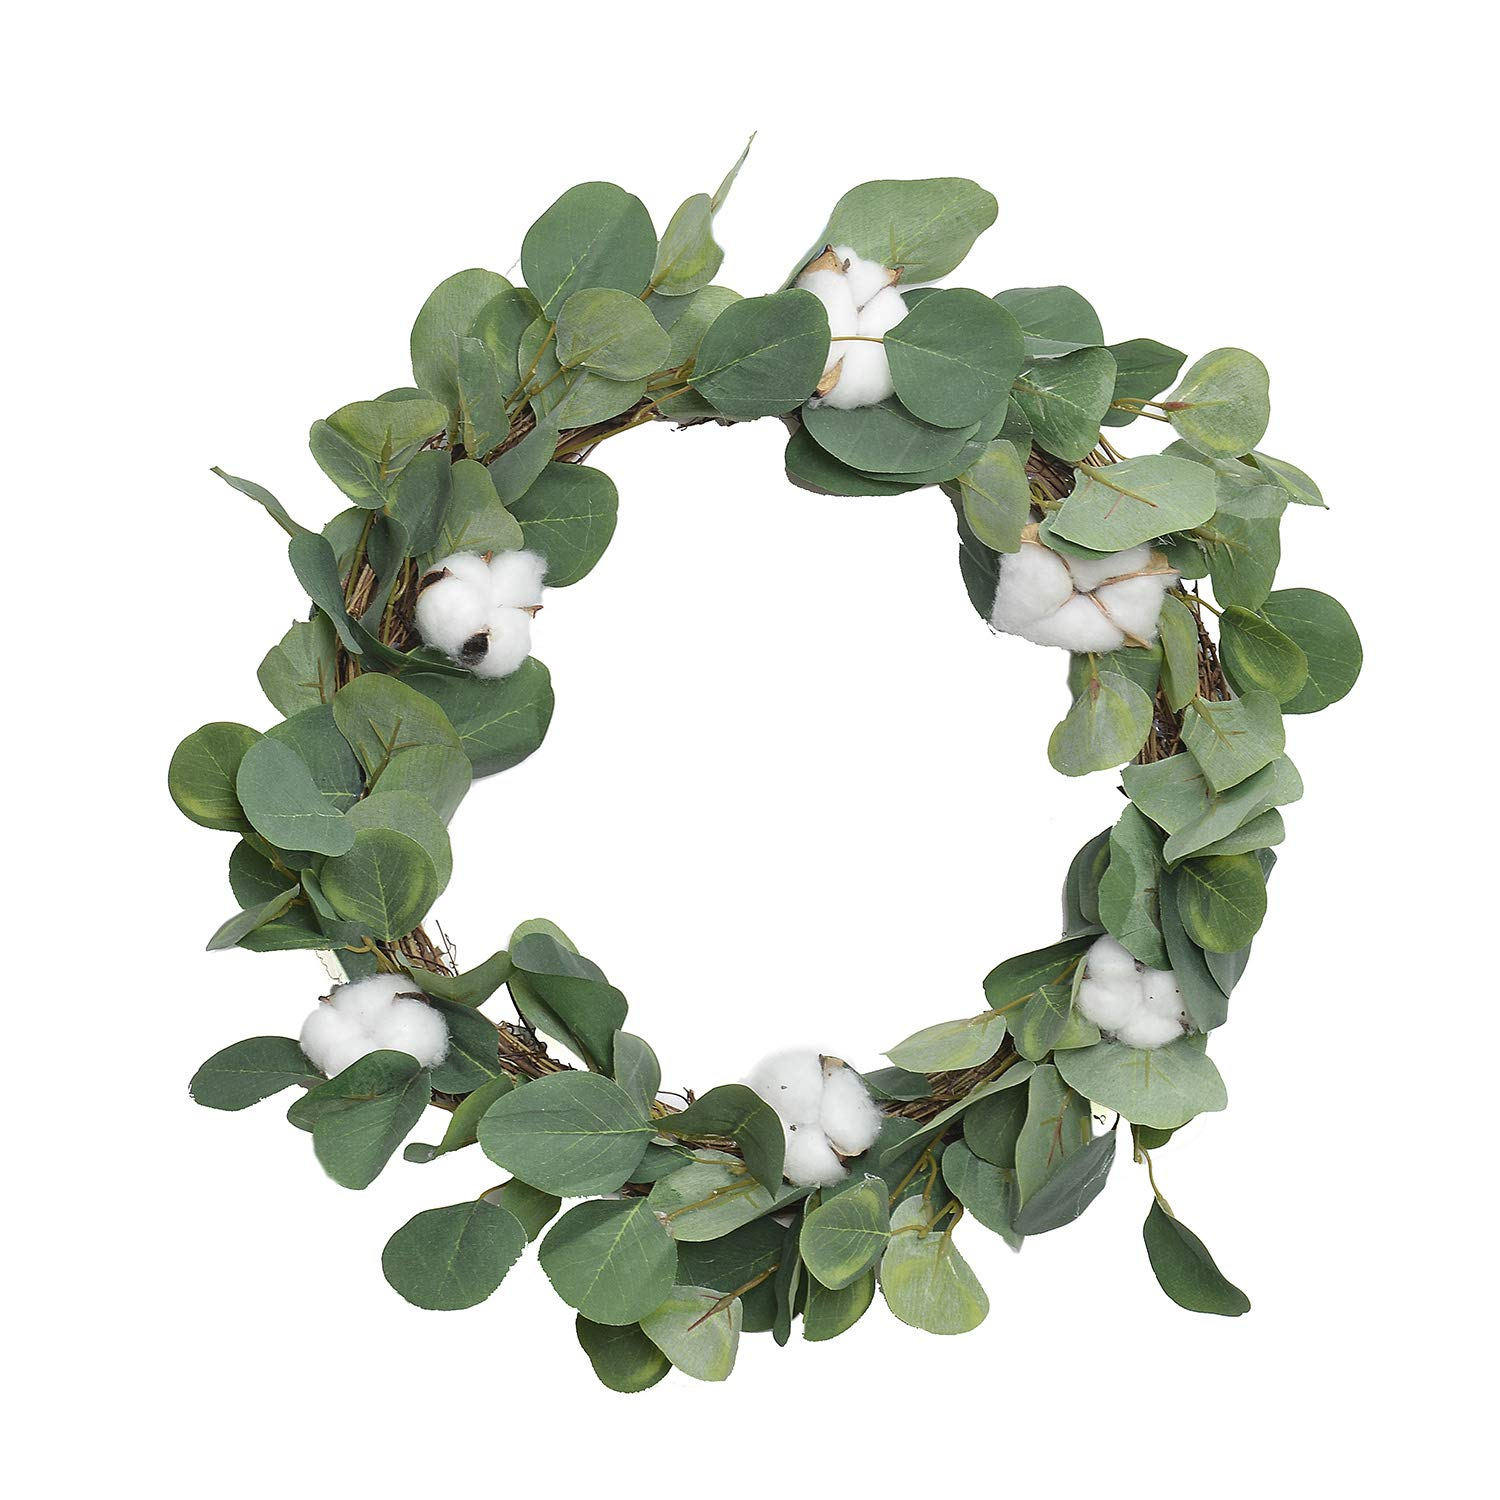 FAVOWREATH 2018 Vitality Series FAVO-W107 Handmade 15 inch Laurel/Eucalyptus Leaf,Cotton Grapevine Wreath for Summer/Fall Festival Front Door/Wall/Fireplace Every Day Nearly Natural Home Hanger Decor by FAVOWREATH